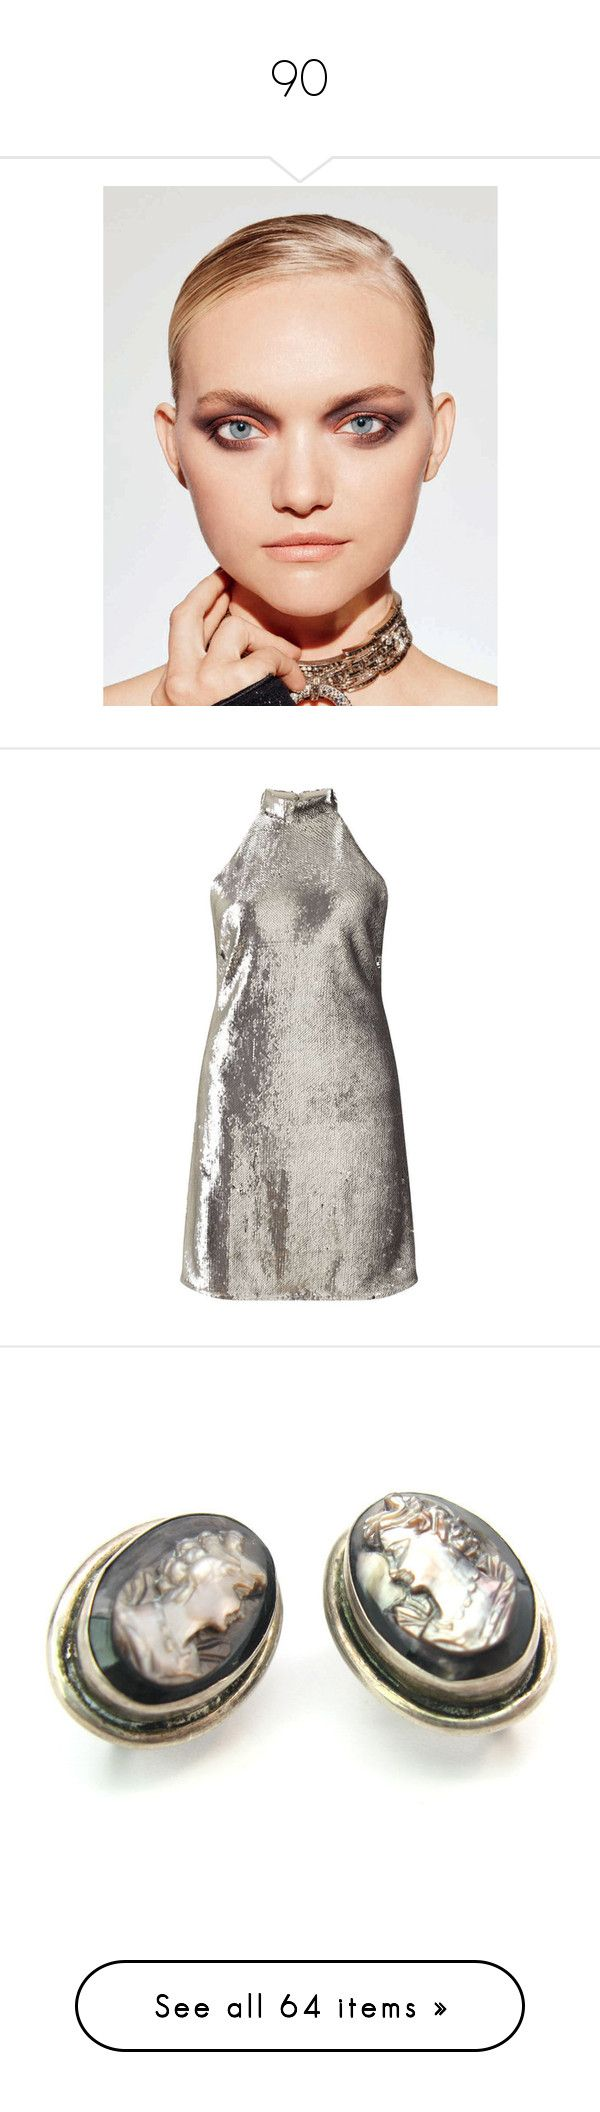 """""""90"""" by pocahaunted666 ❤ liked on Polyvore featuring dresses, miss selfridge, short dresses, silver metal, short white dresses, white sequin dress, mini dress, silver cocktail dress, sequin mini dress and jewelry"""